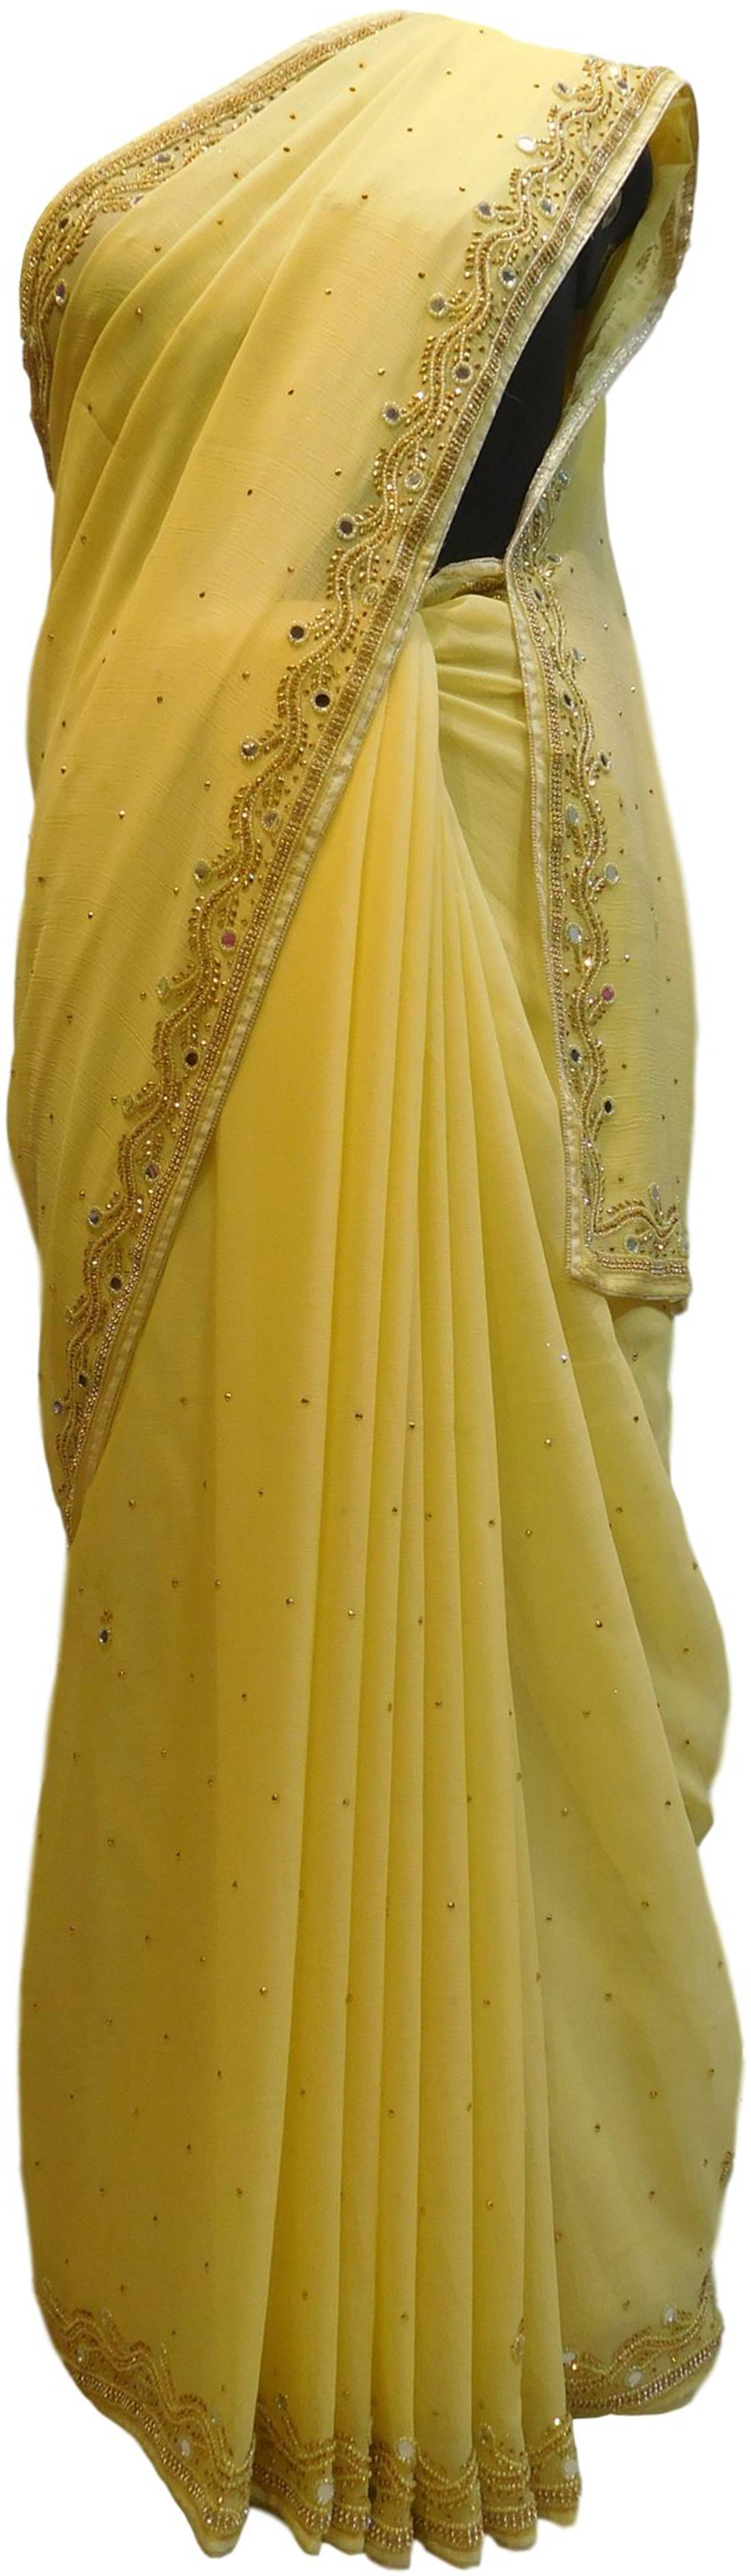 Yellow Designer Wedding Partywear Georgette Mirror Beads Stone Hand Embroidery Work Bridal Saree Sari E051